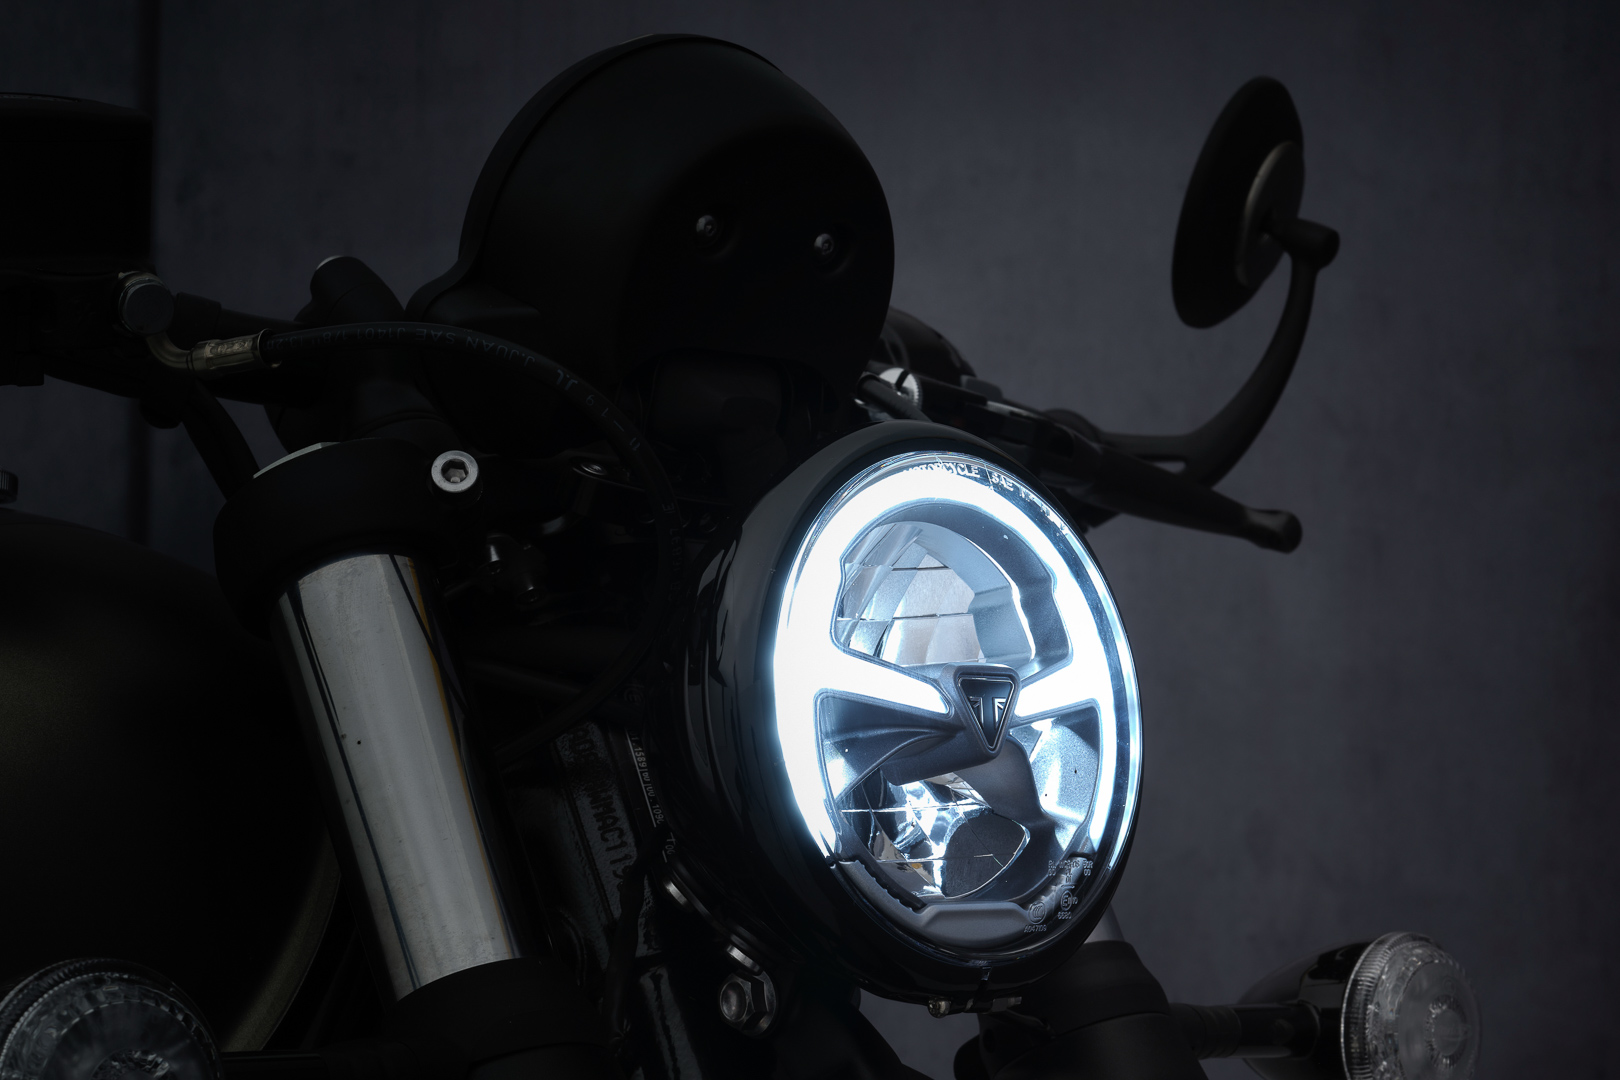 2022 Triumph Bonneville Bobber First Look: LED Headlight